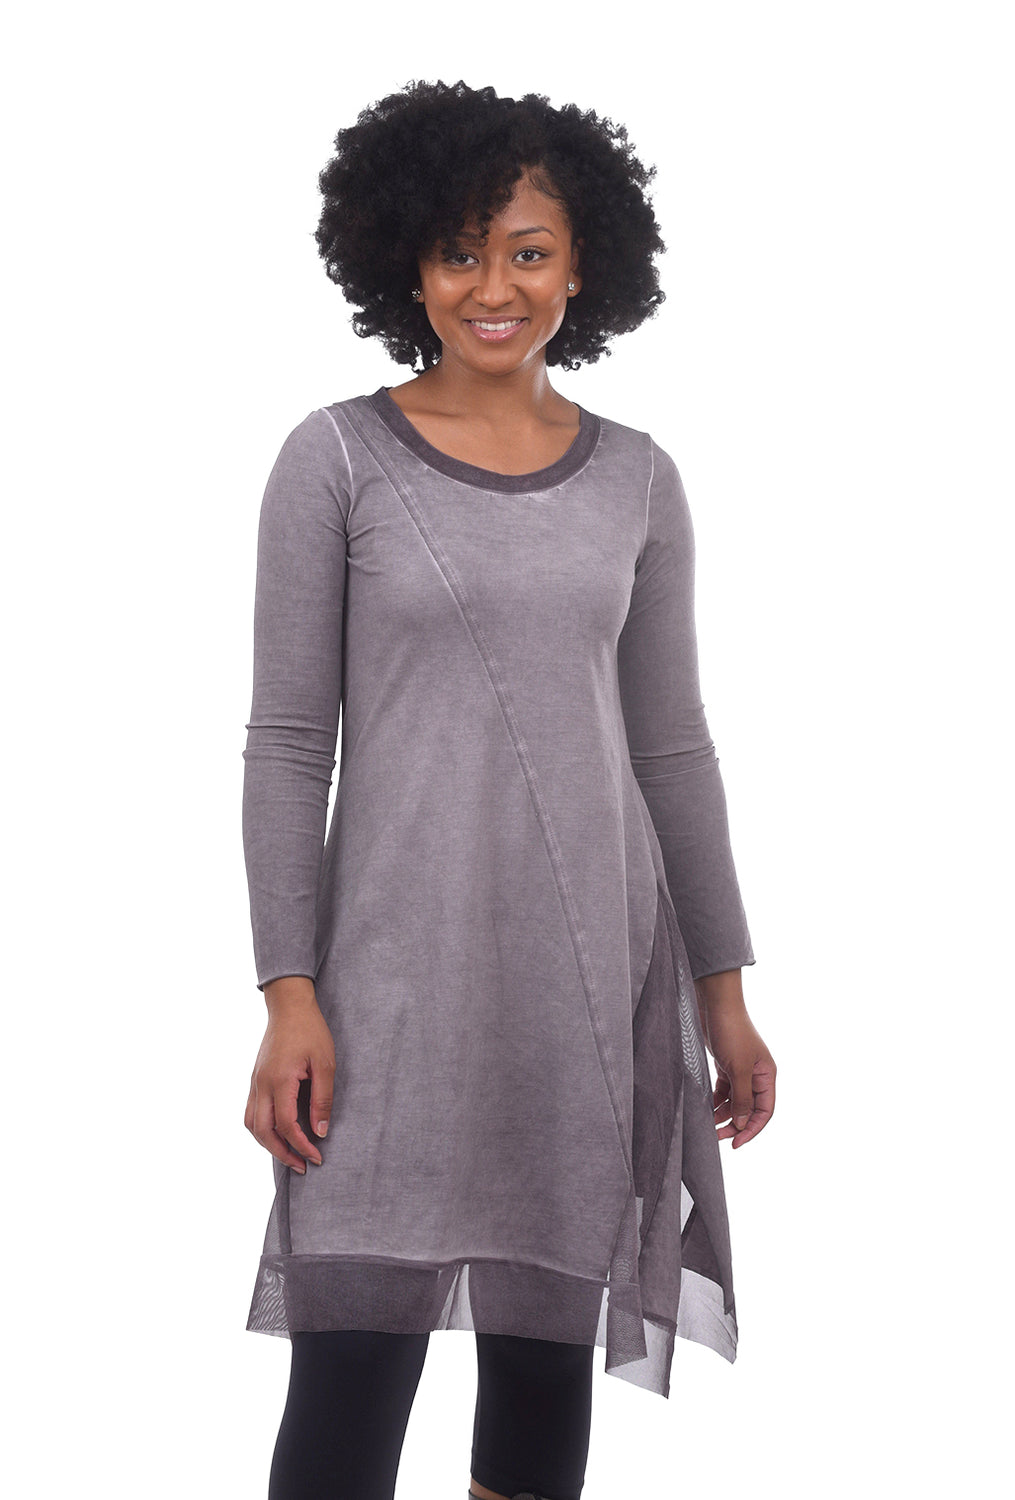 Luukaa Mesh Trim Garment-Dye Dress, Light Plum